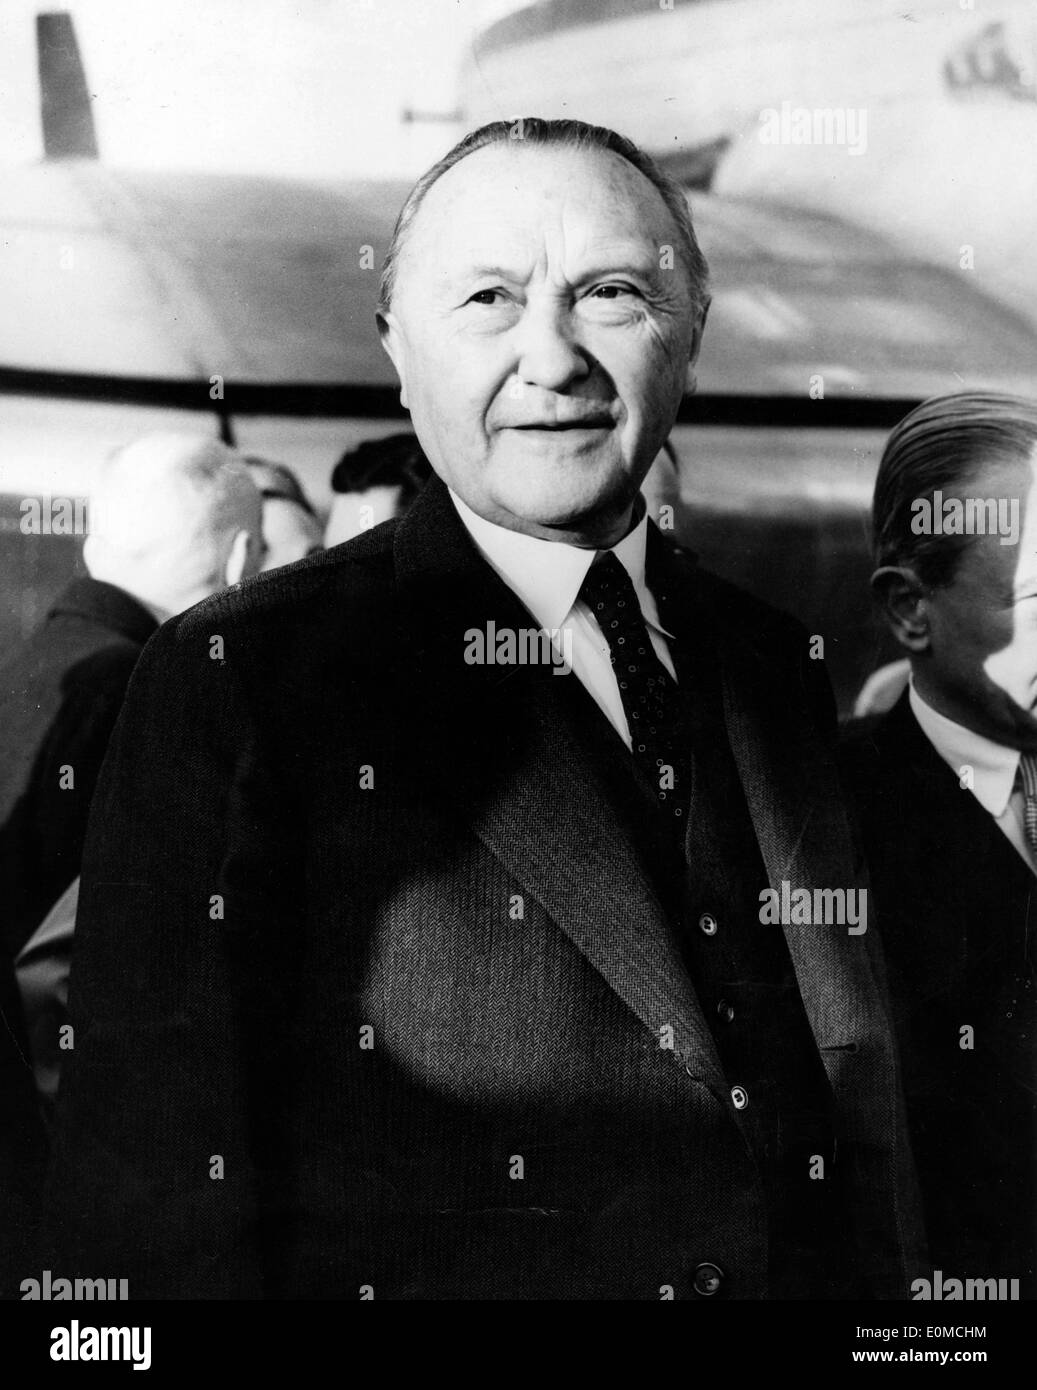 Dr. Adenauer arrives for Nine Power Conference - Stock Image